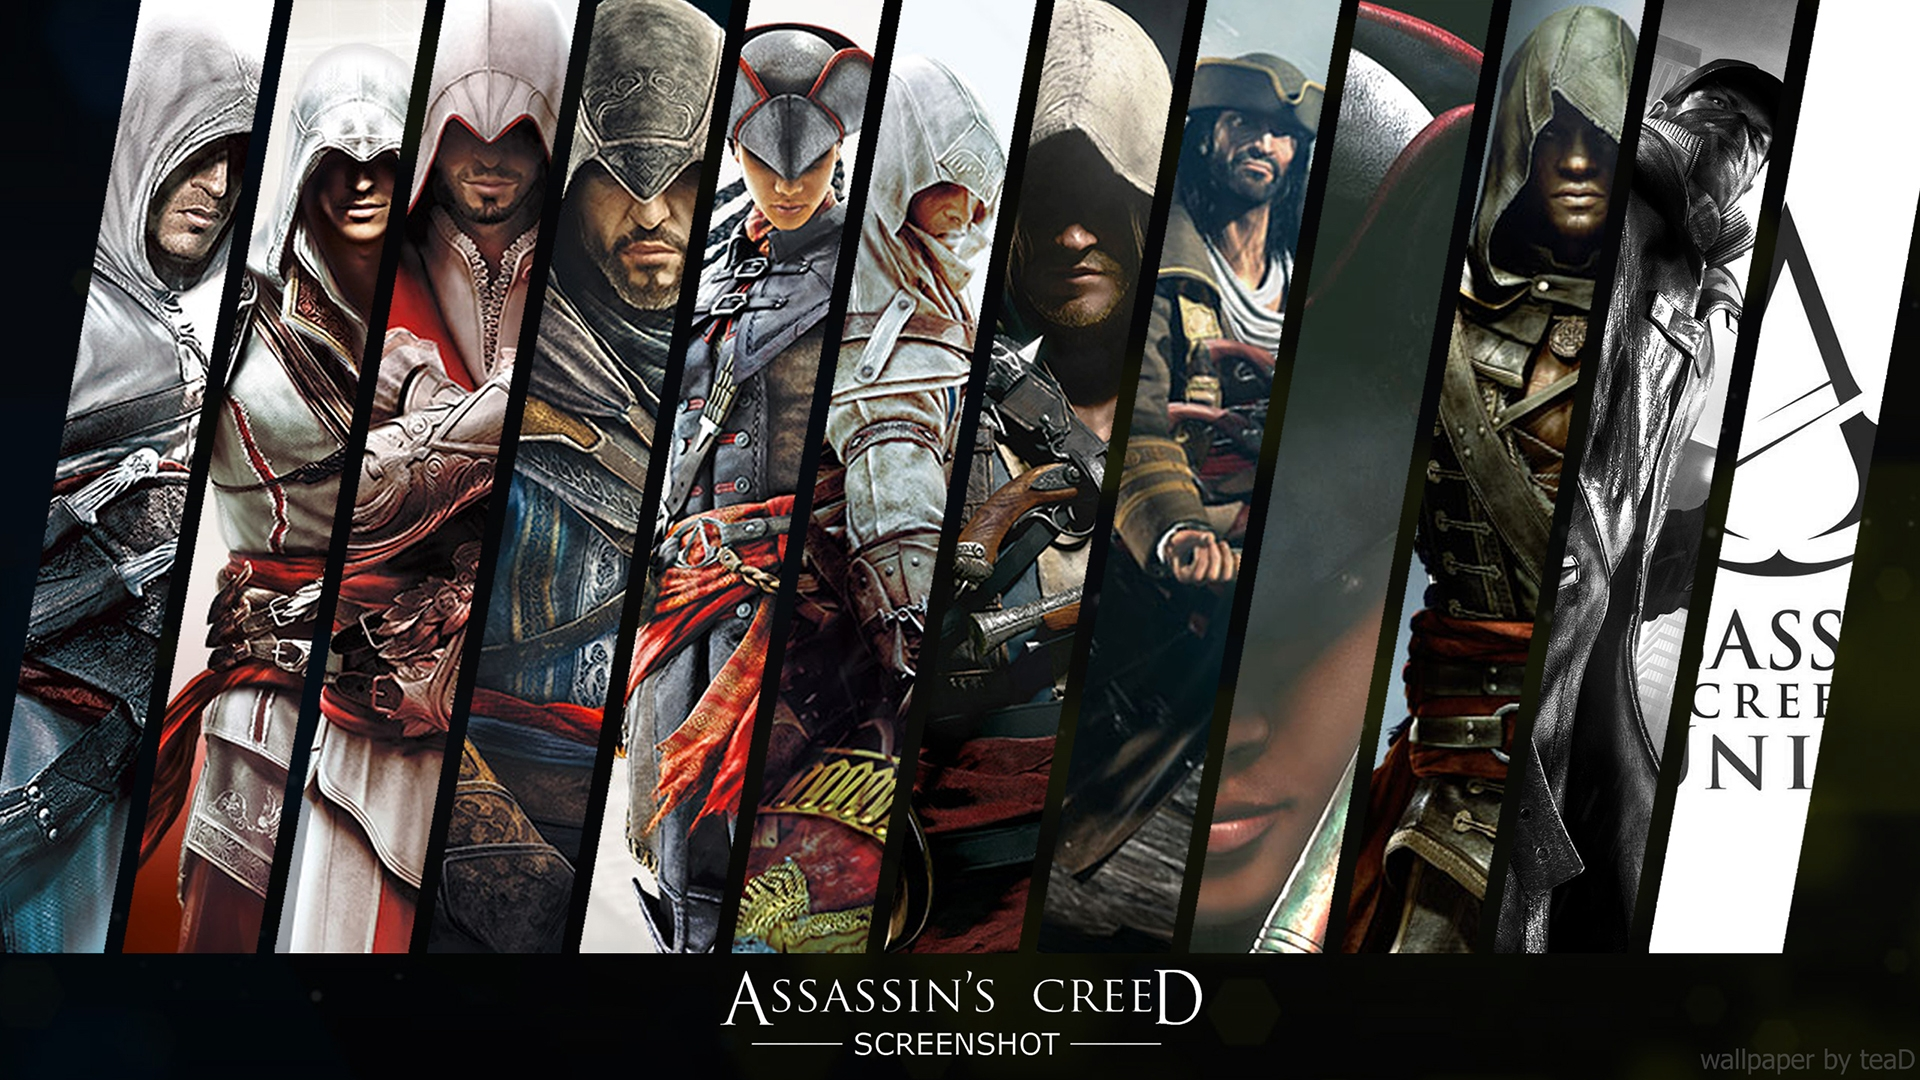 Free Download Wallpaper Assassins Creed Wallpaper 1920x1080 71370